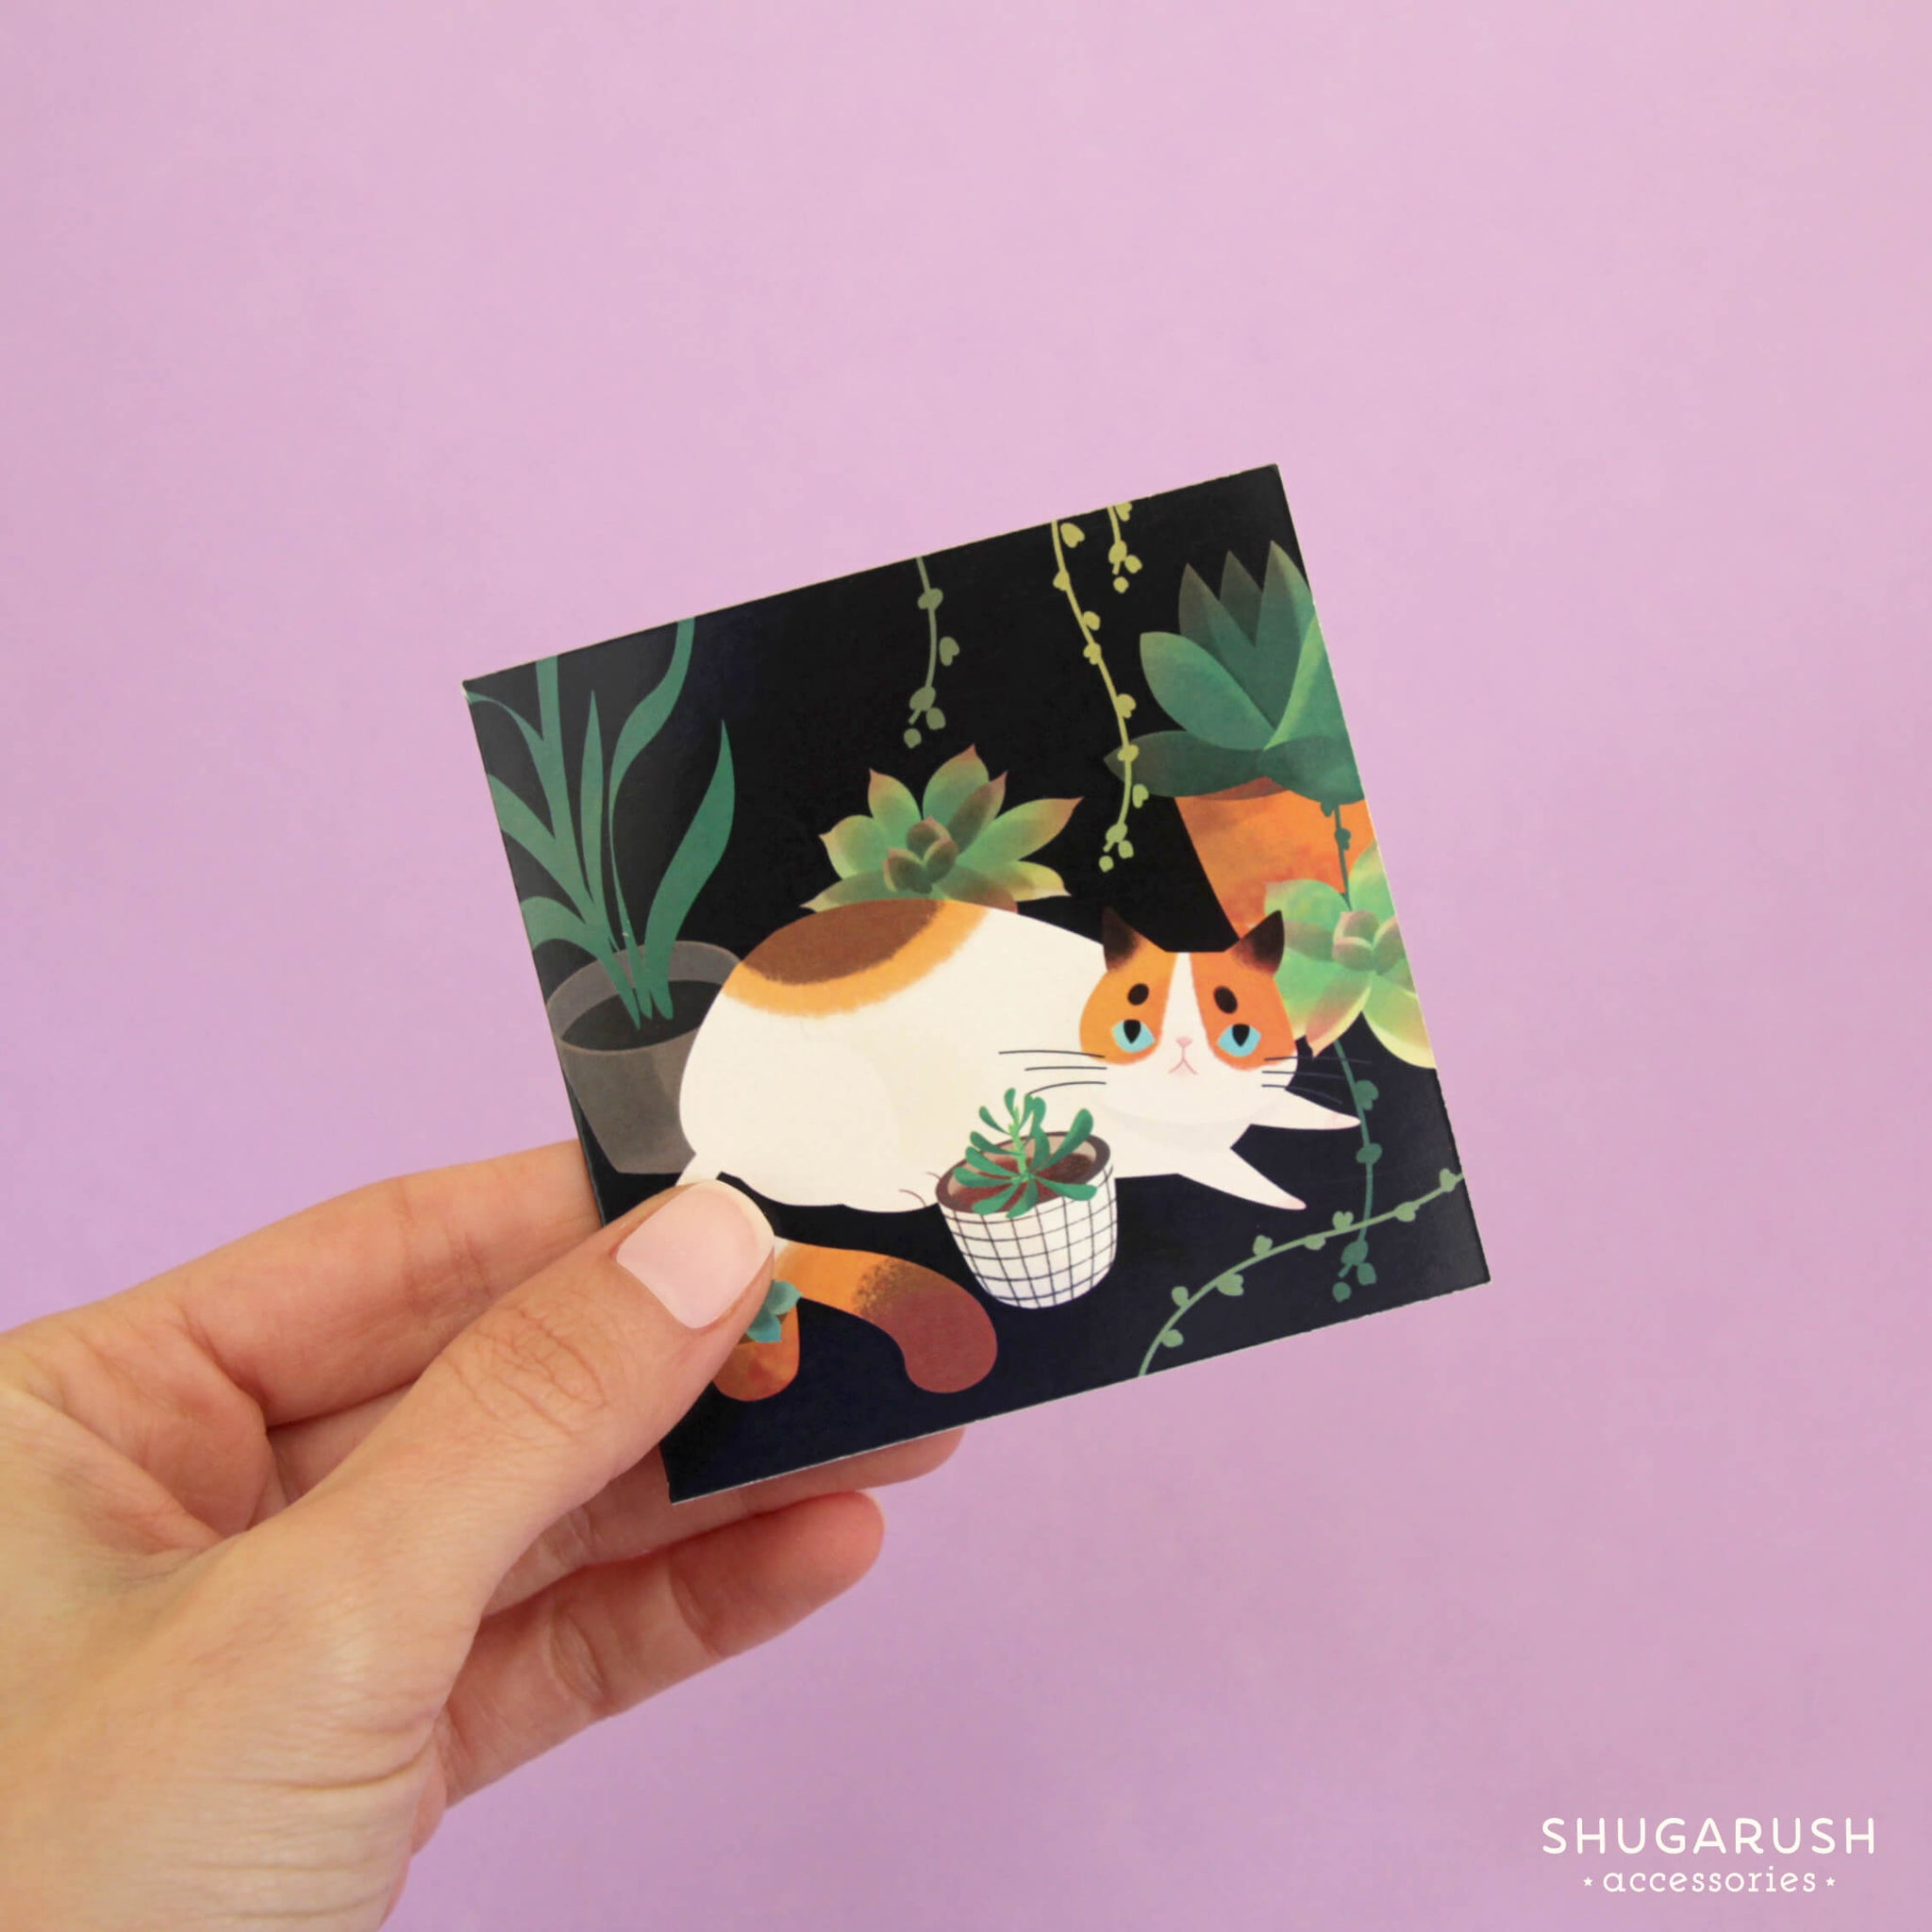 Tiny cat greeting cards shugarush accessories tiny cat greeting cards m4hsunfo